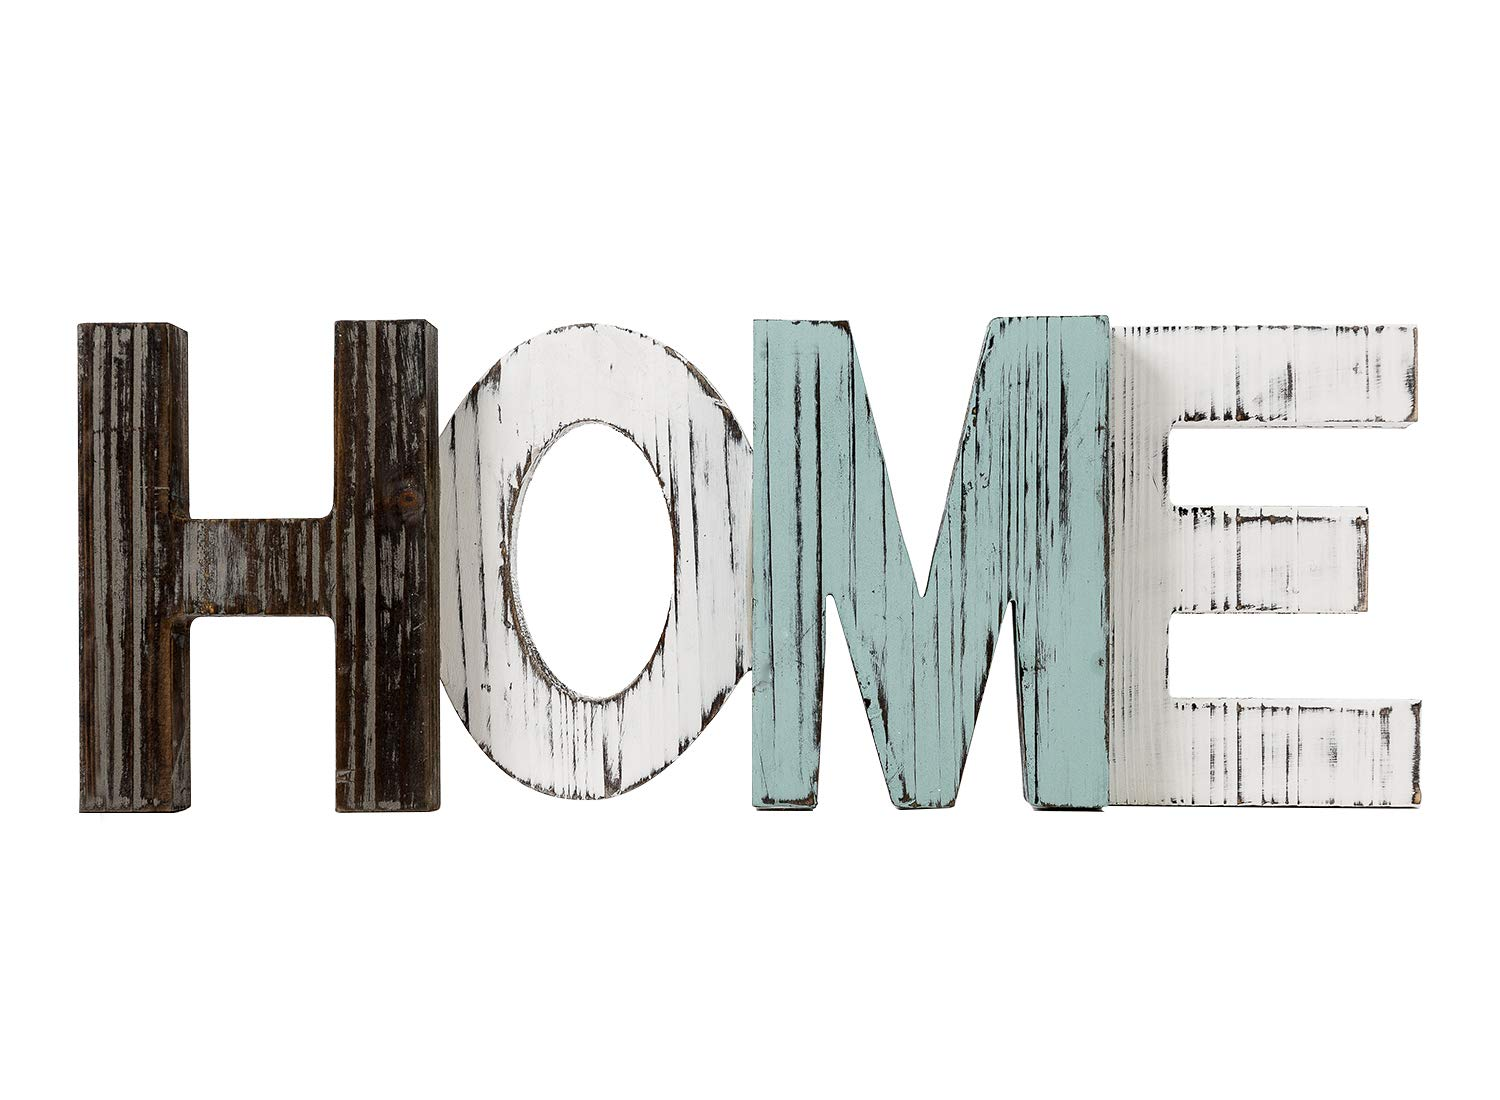 TIMEYARD Rustic Wood Home Sign Decor, Decorative Word Signs, Freestanding Cutout Word Table Decor Centerpiece, Multicolor